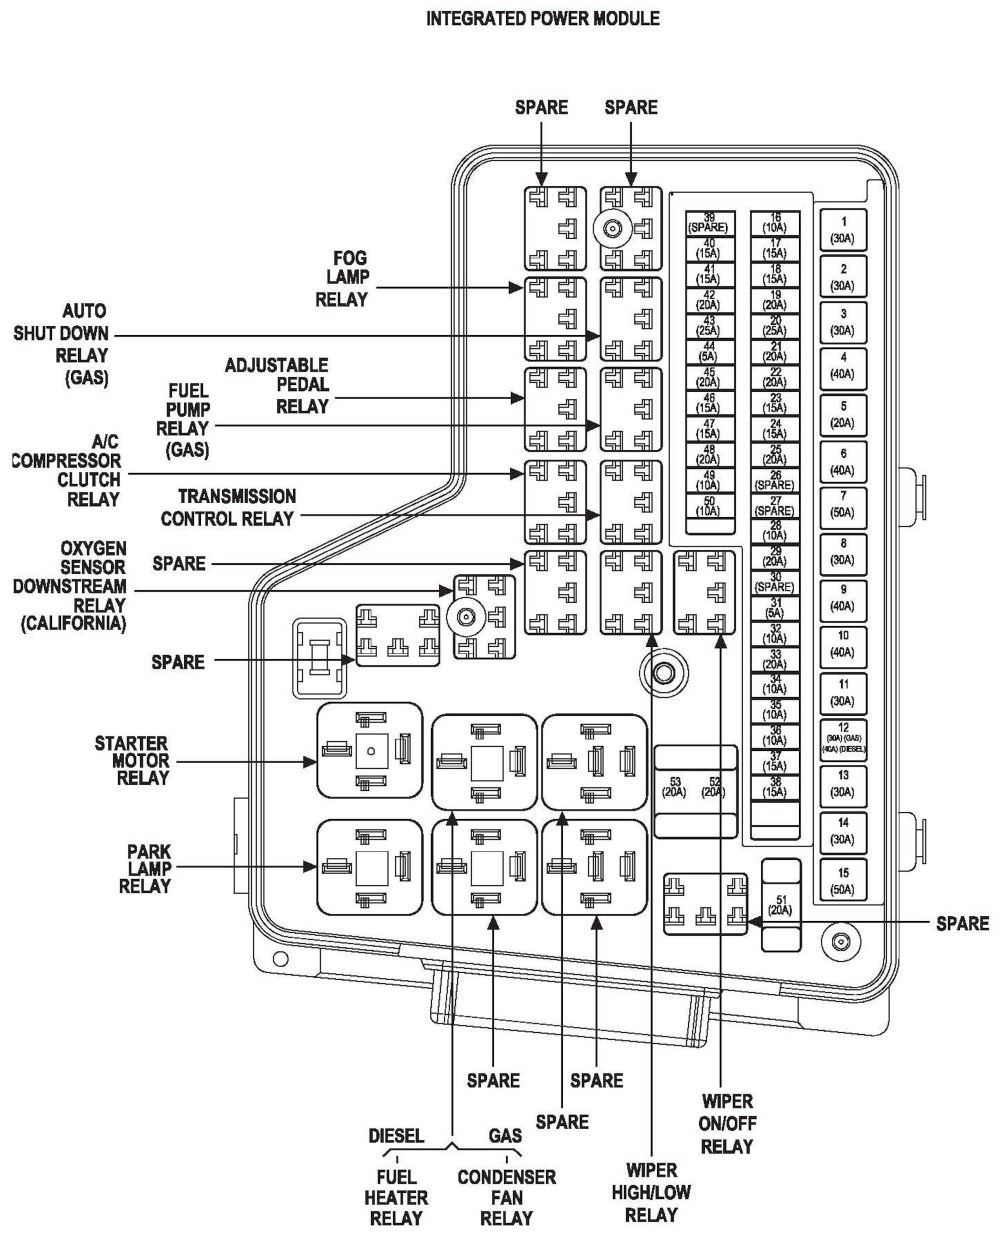 medium resolution of 2004 dodge ram 3500 fuse box wiring diagram review 2008 dodge ram 3500 fuse box location dodge ram 3500 fuse box